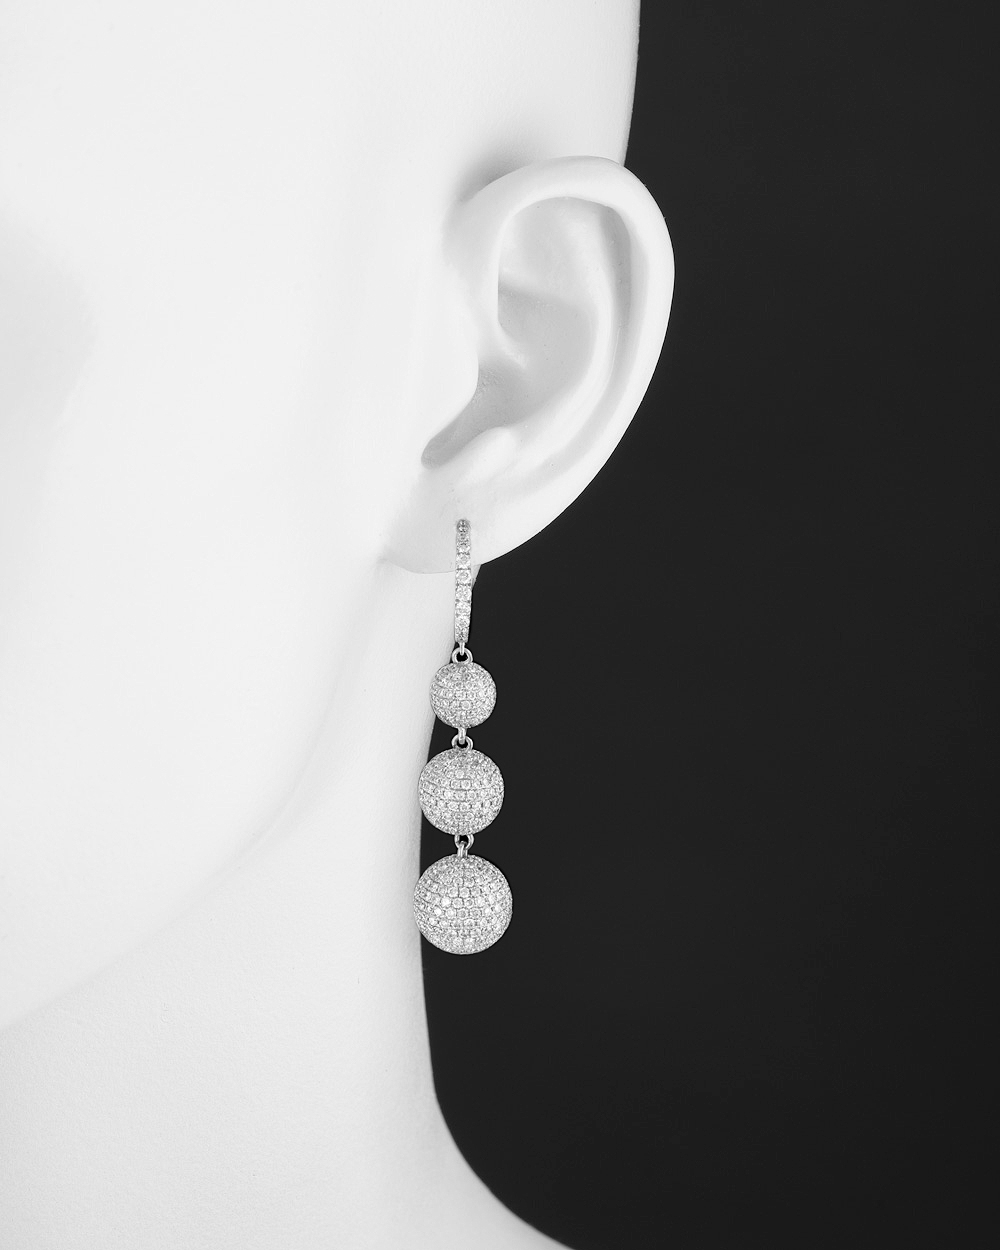 Pavé Diamond Ball 3 Drop Earrings Set With Round Diamonds Weighing Roximately 9 21 Total Carats In 18k White Gold Signed Odelia Circa 2007